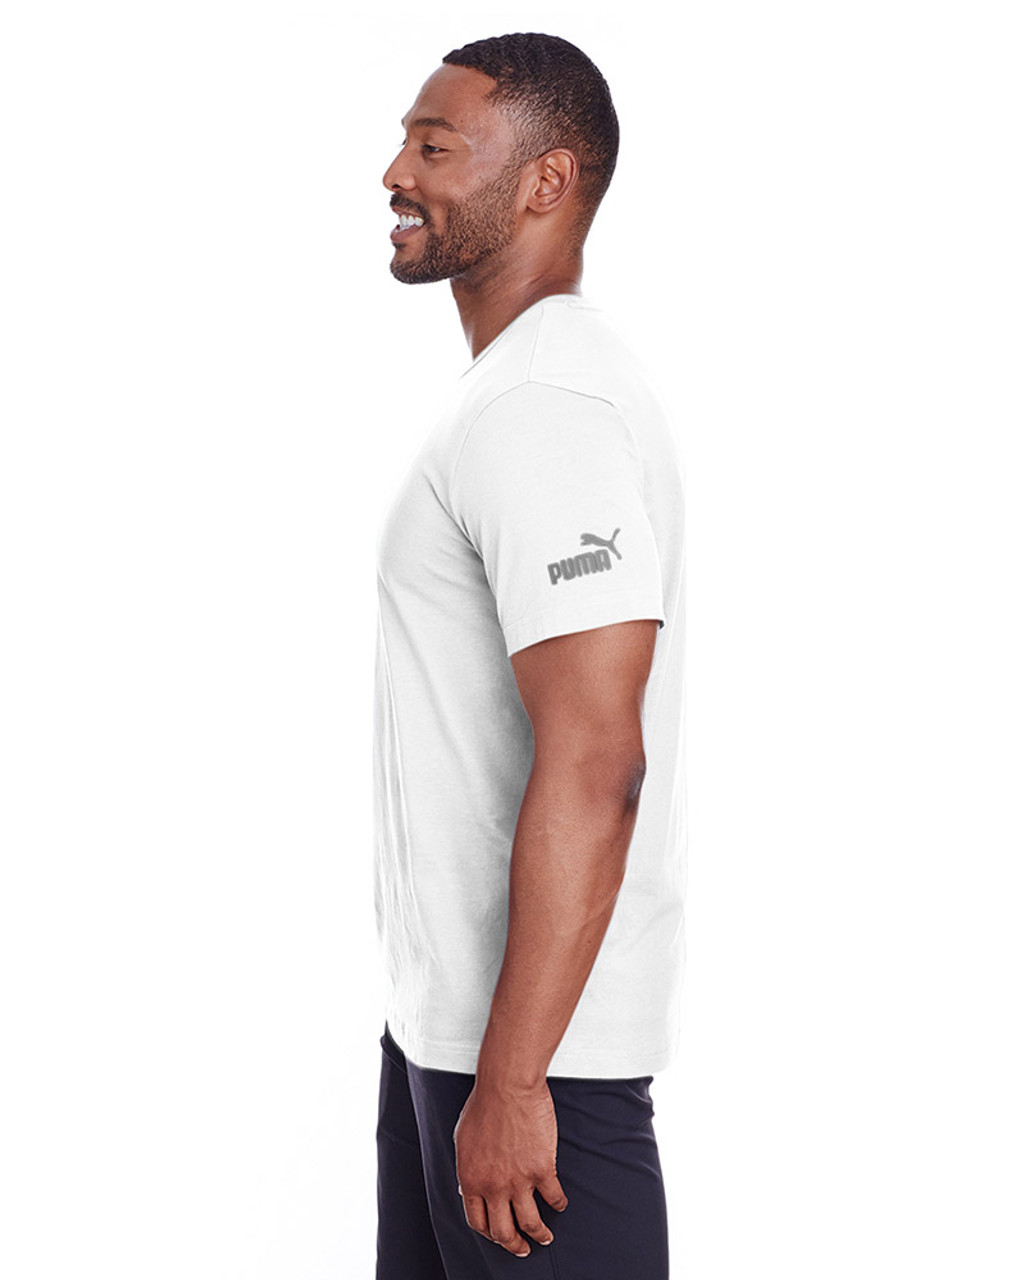 Puma White/Quiet Shade - side, 582006 Puma Sport Essential Adult Logo T-Shirt | BlankClothing